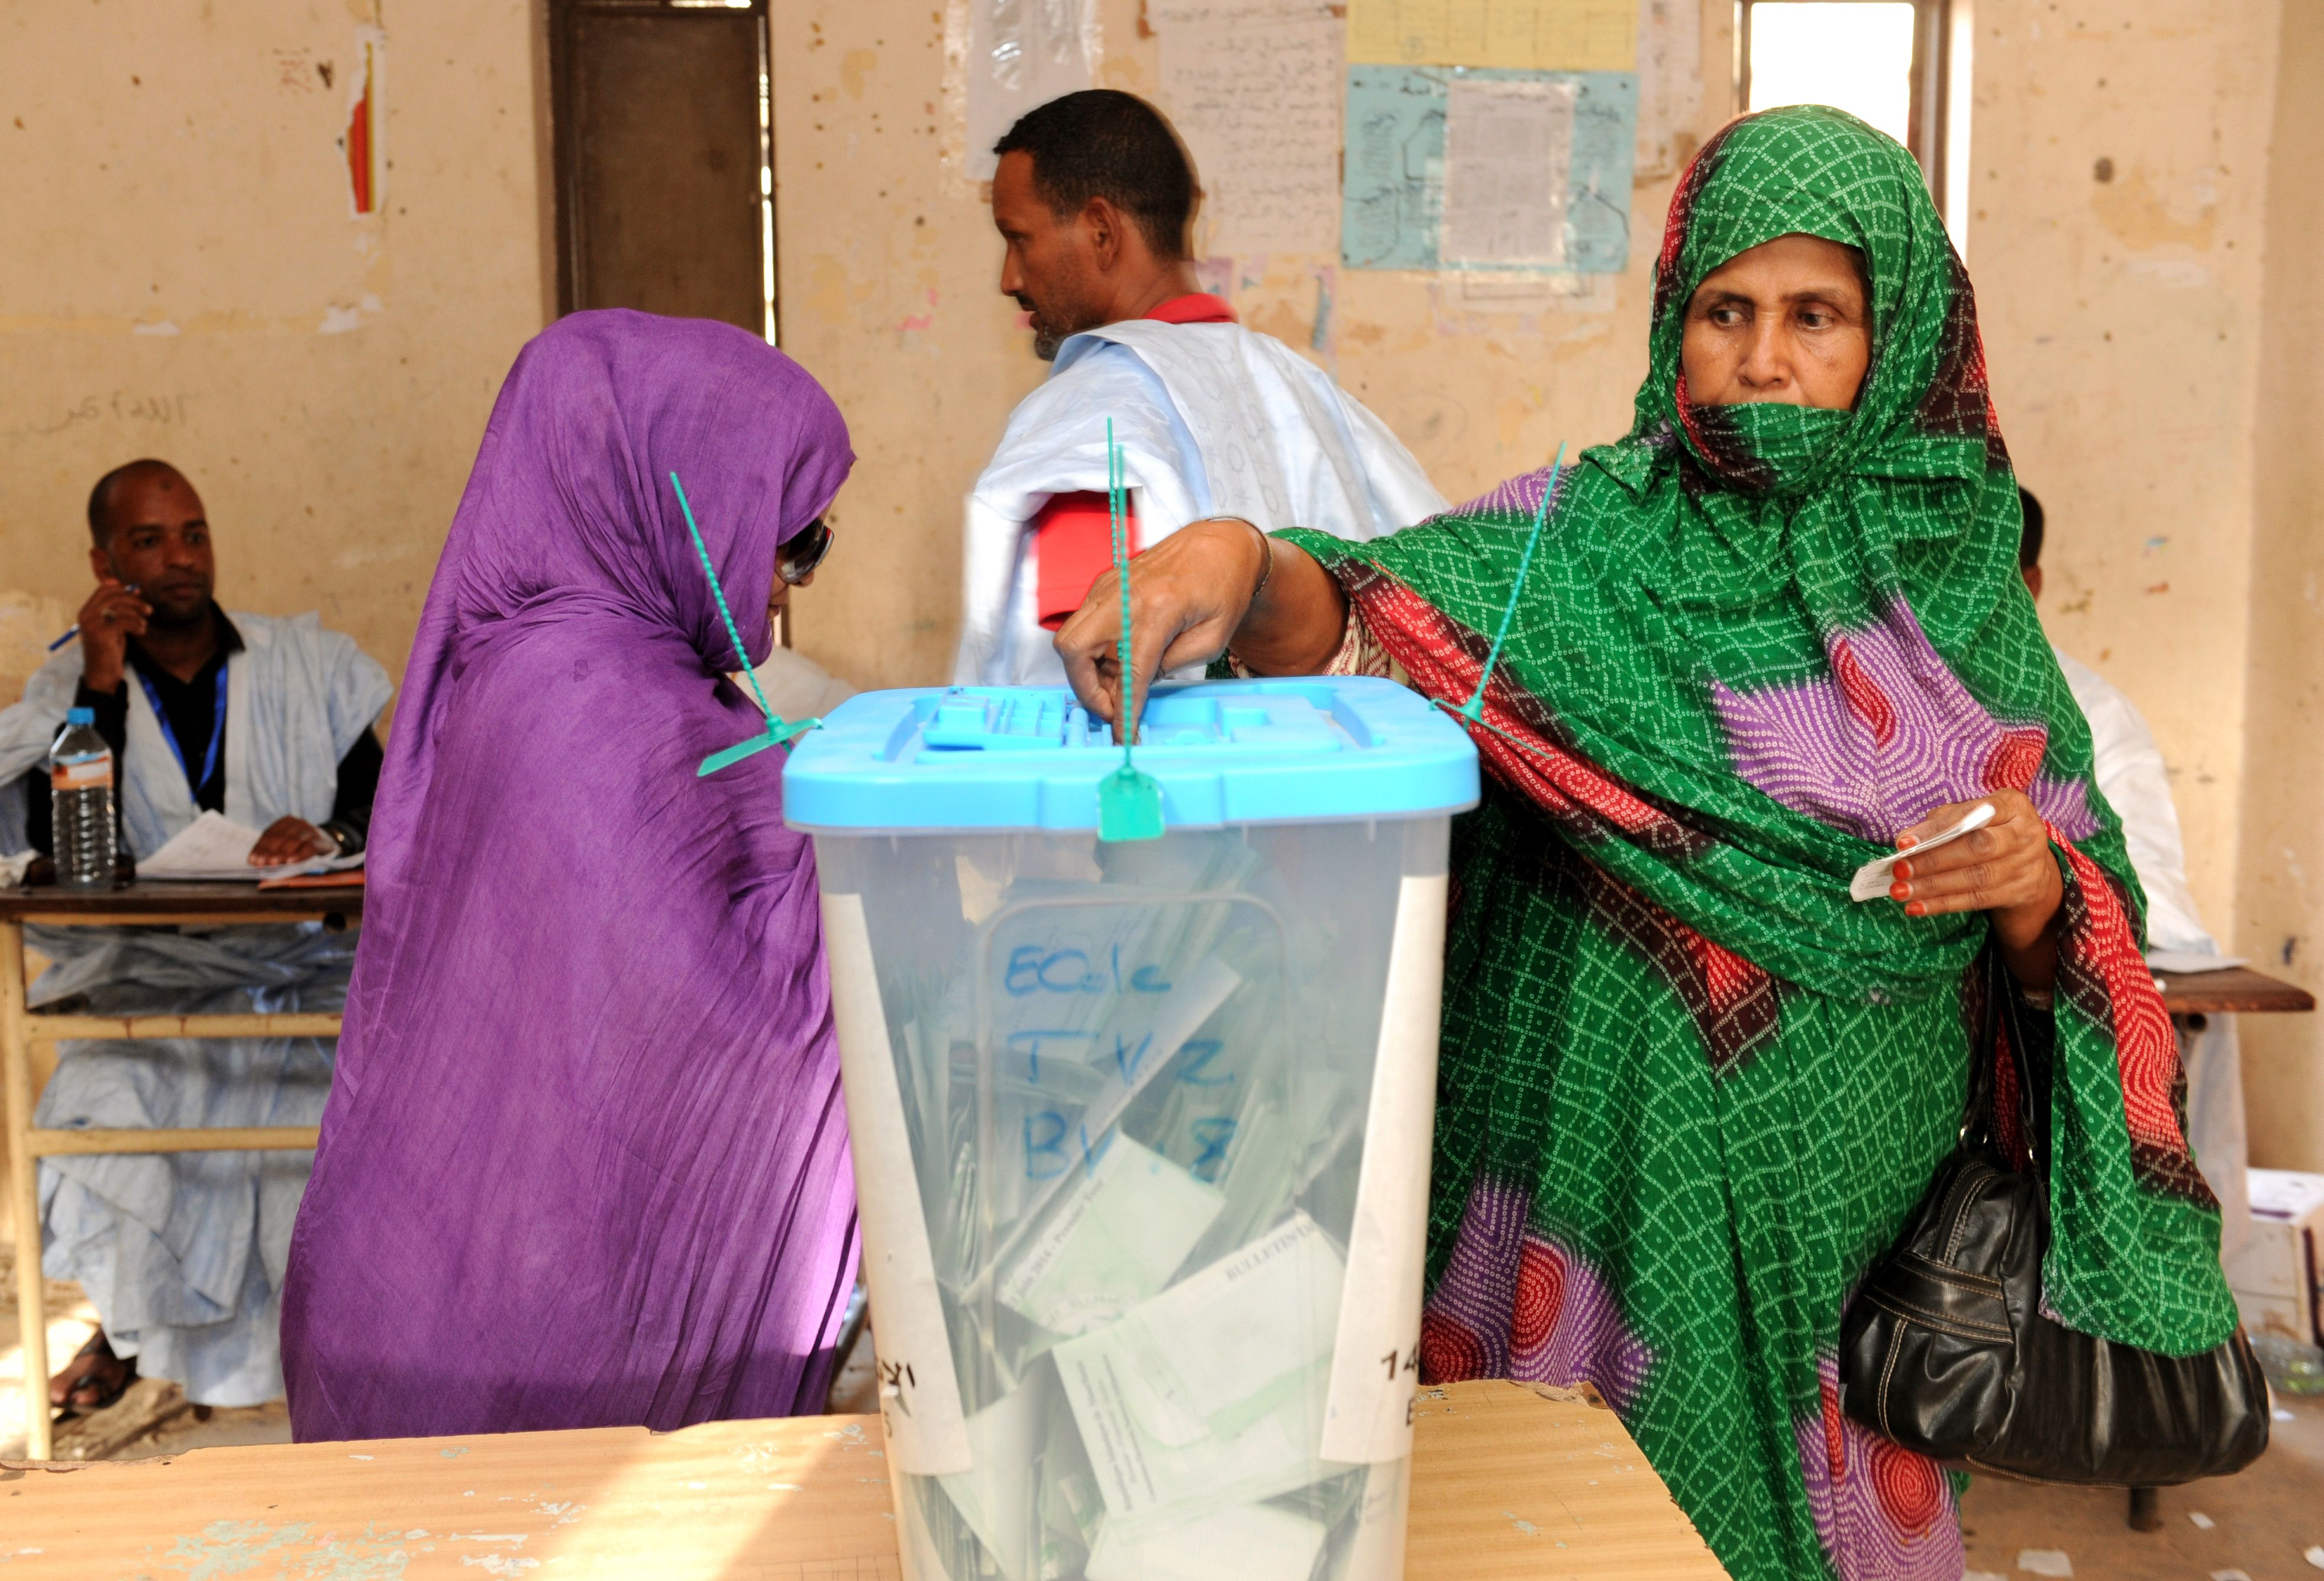 A Mauritanian woman casts her ballot at a polling station in Nouakchott, on June 21, 2014, during the presidential elections. (AFP PHOTO / SEYLLOU)